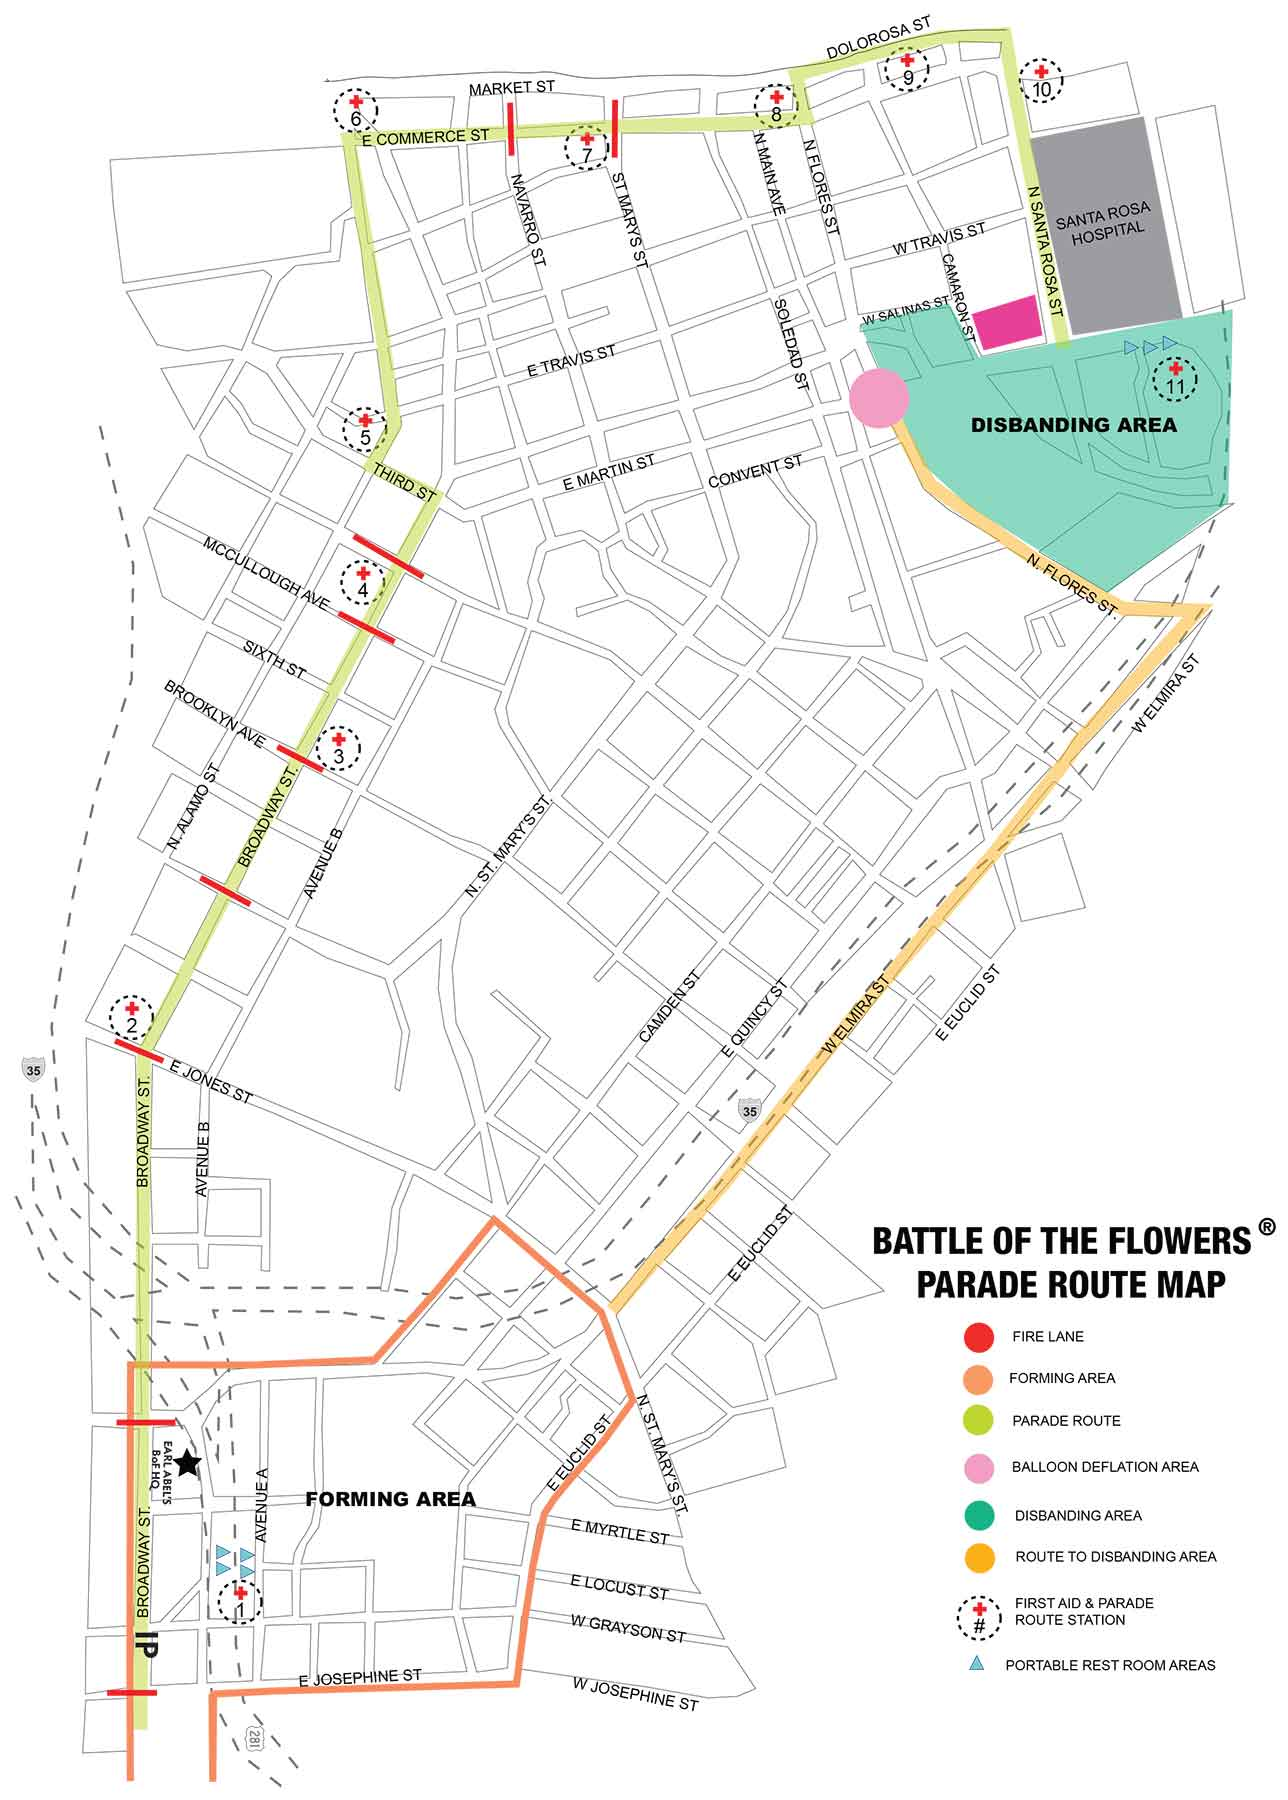 Battle of the flowers parade route 2019